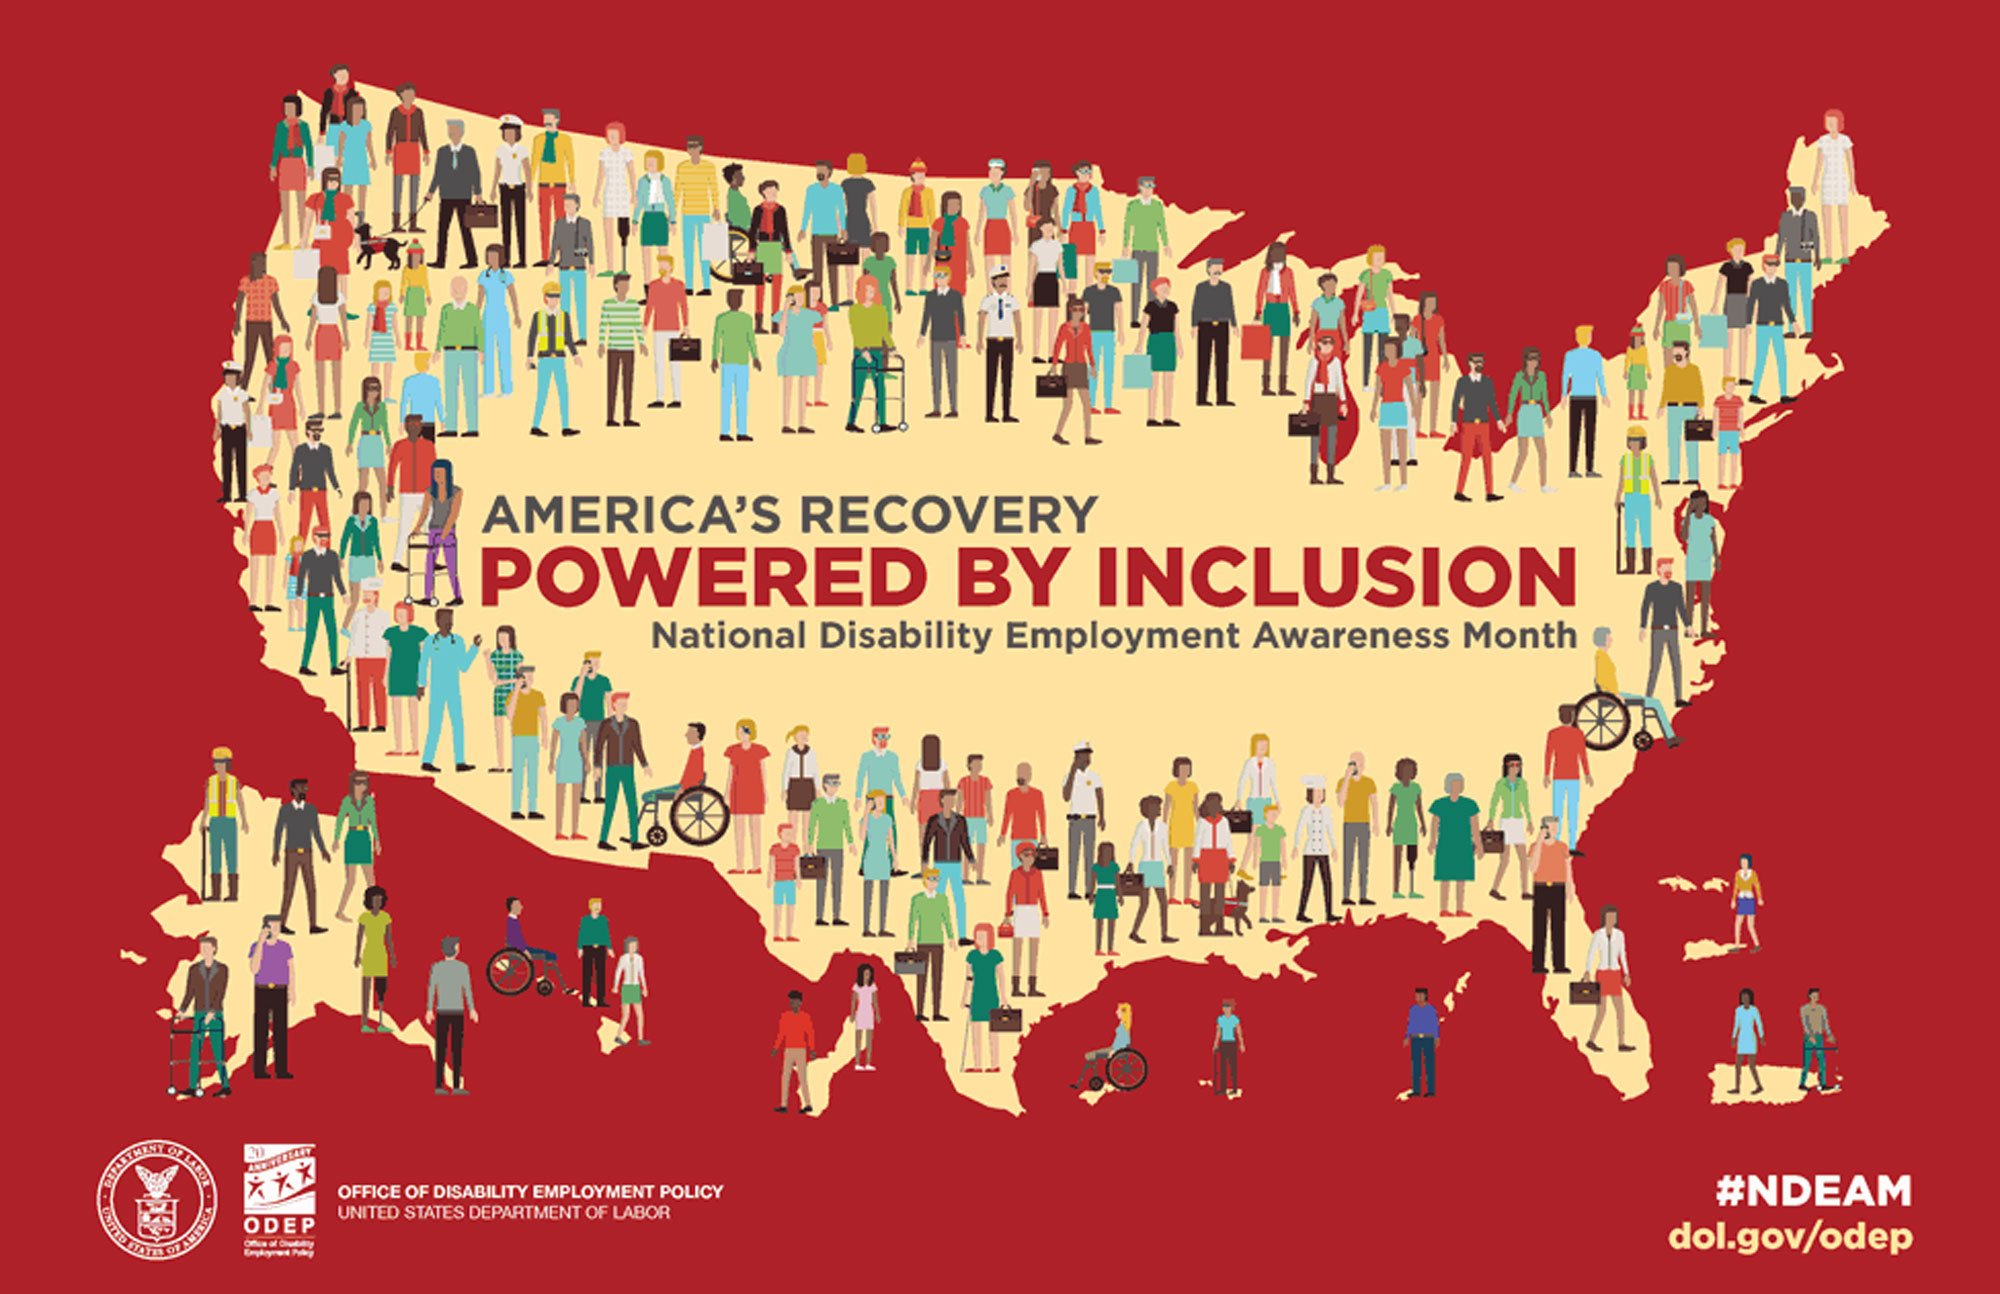 America's Recovery Powered by Inclusion - National Disability Employment Awareness Month